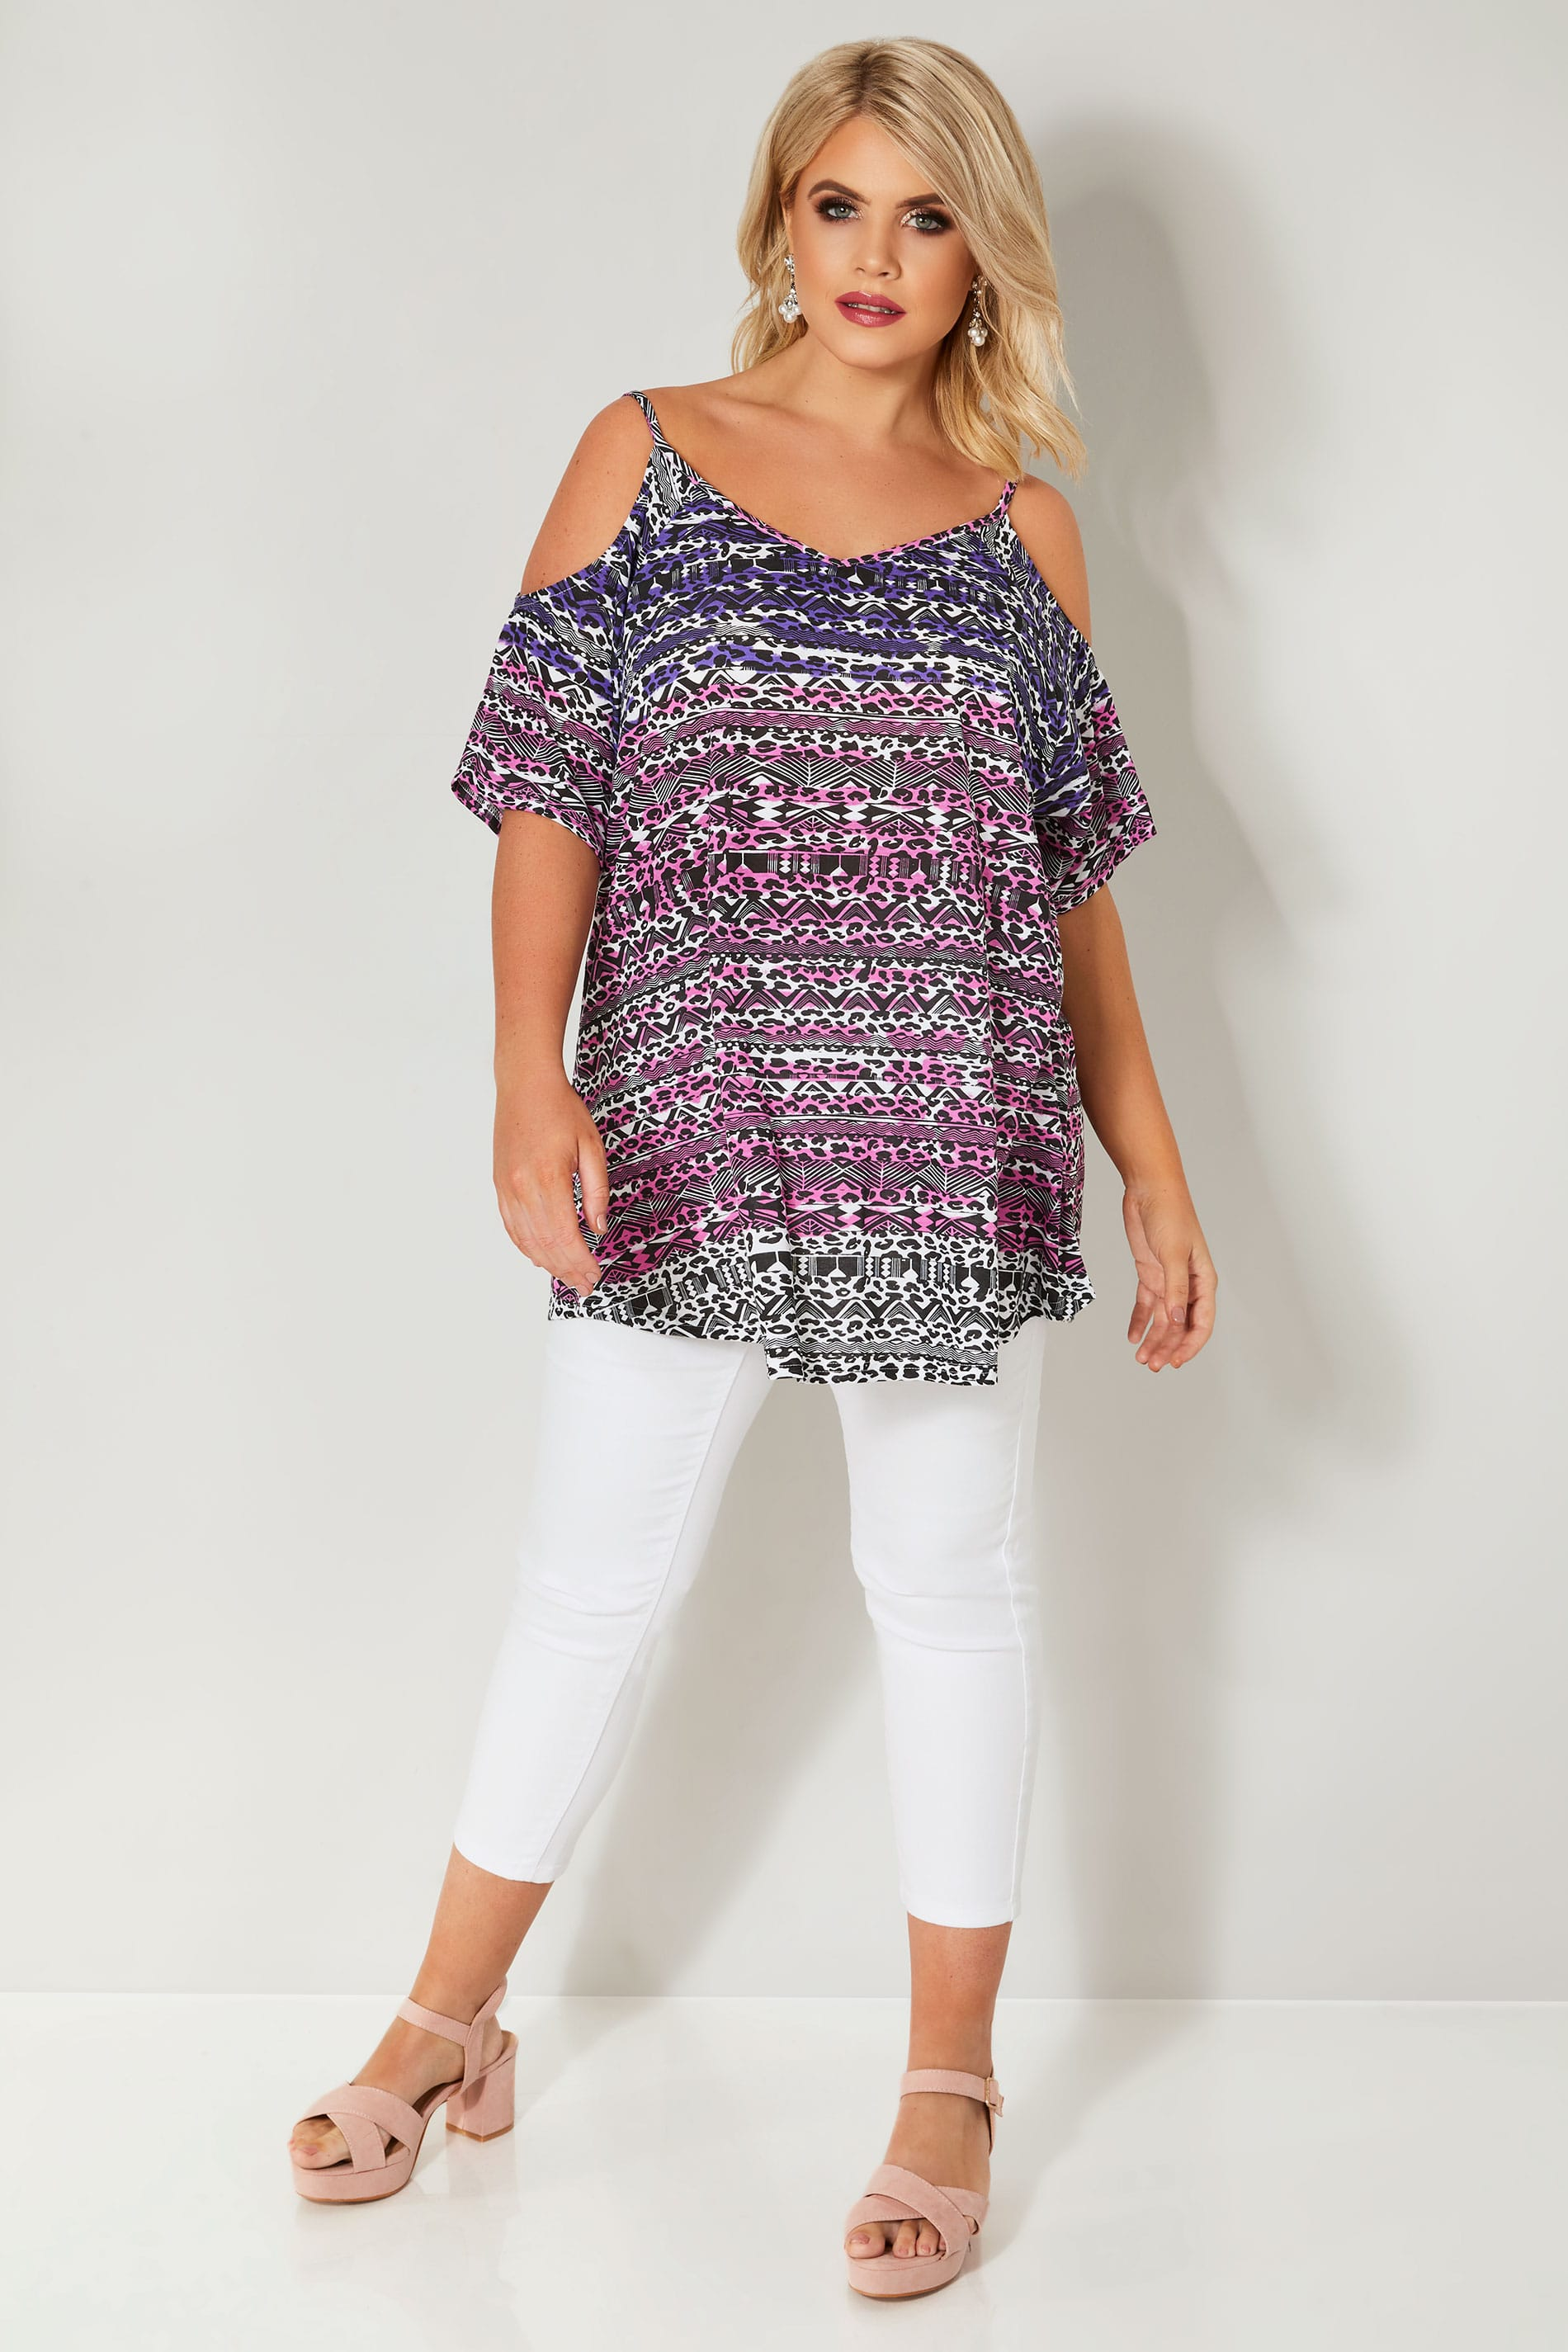 Purple & Pink Printed Cold Shoulder Top, plus size 16 to 36